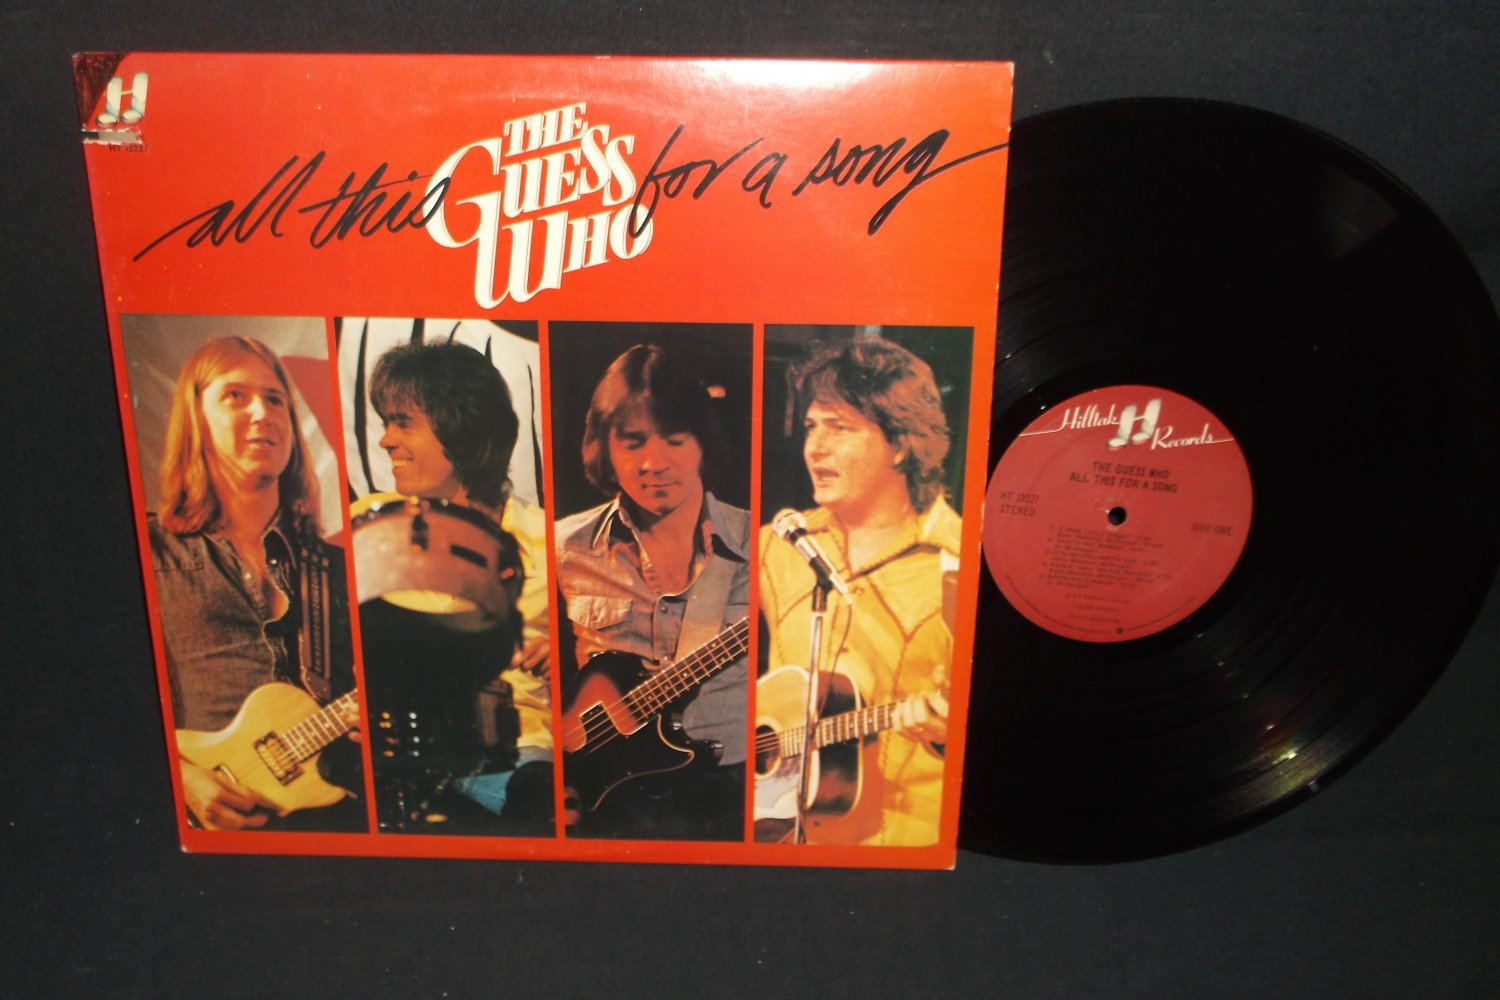 The Guess Who  All This For A Song   HILLTAK 19227 - Rock Record  LP